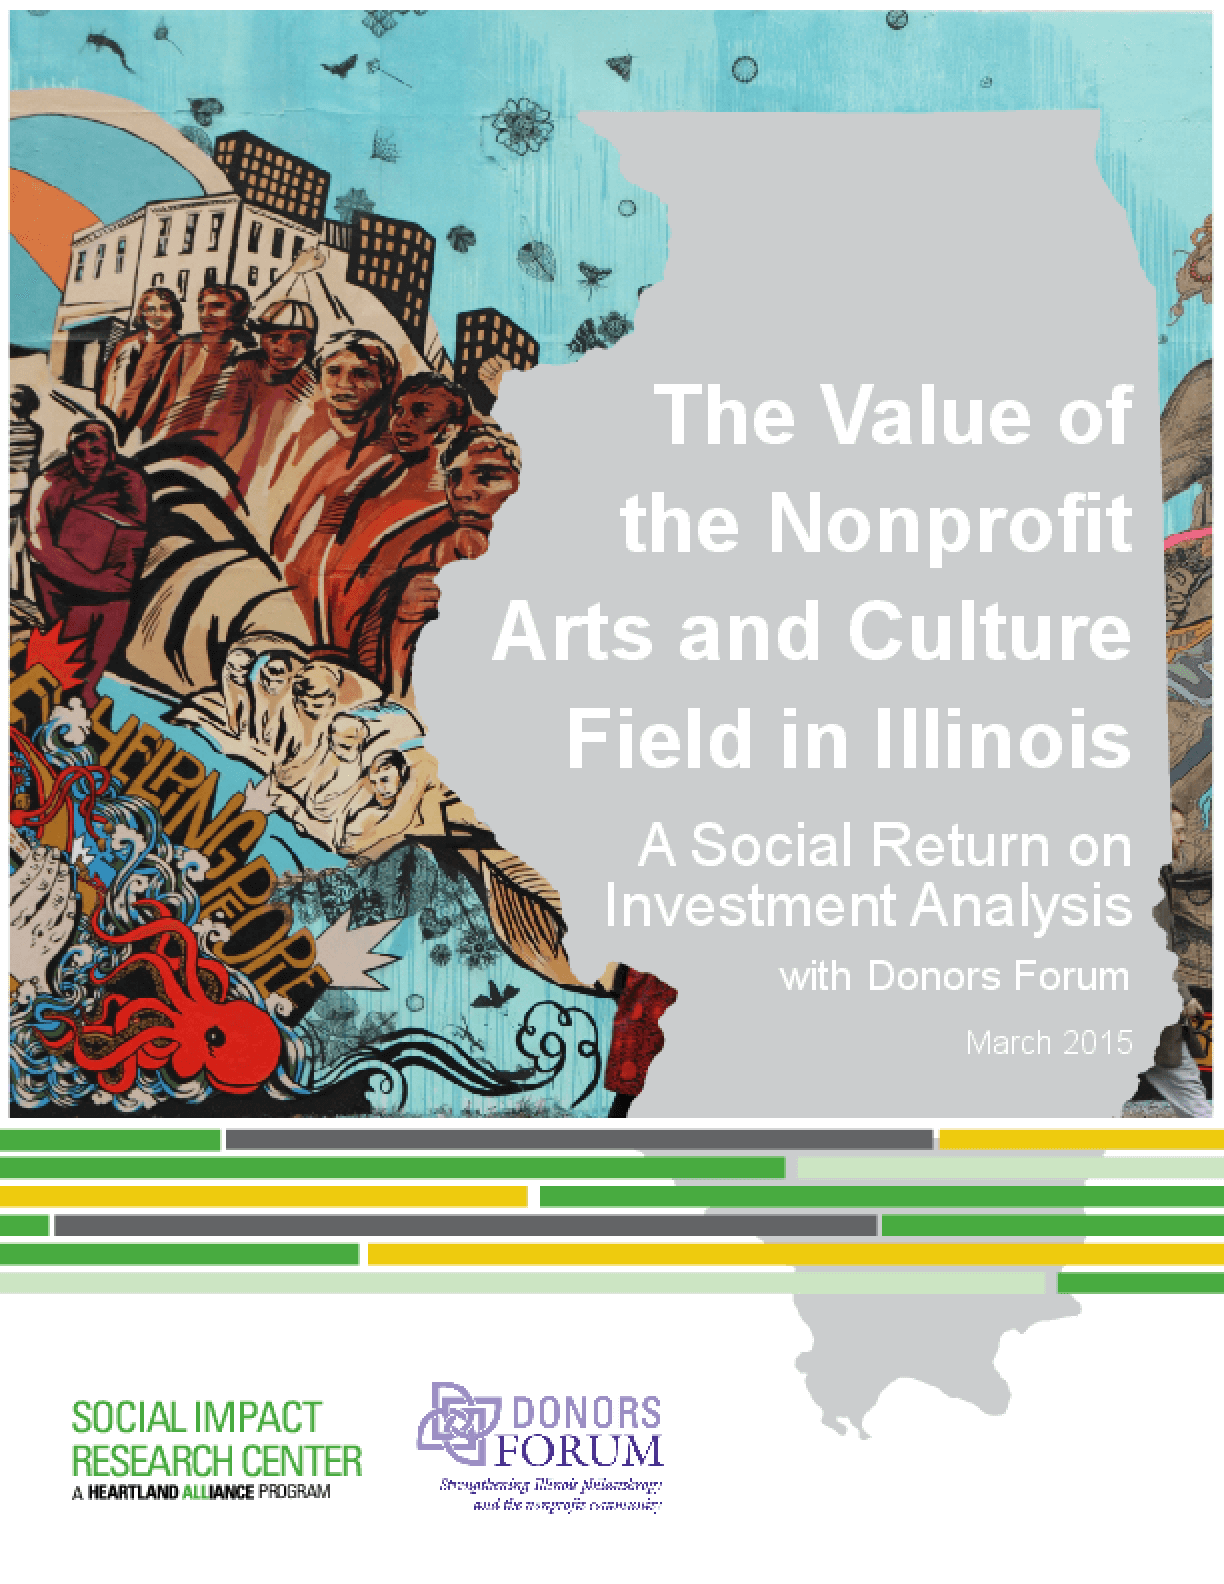 The Value of the Nonprofit Arts and Culture Field in Illinois: A Social Return on Investment Analysis with Donors Forum